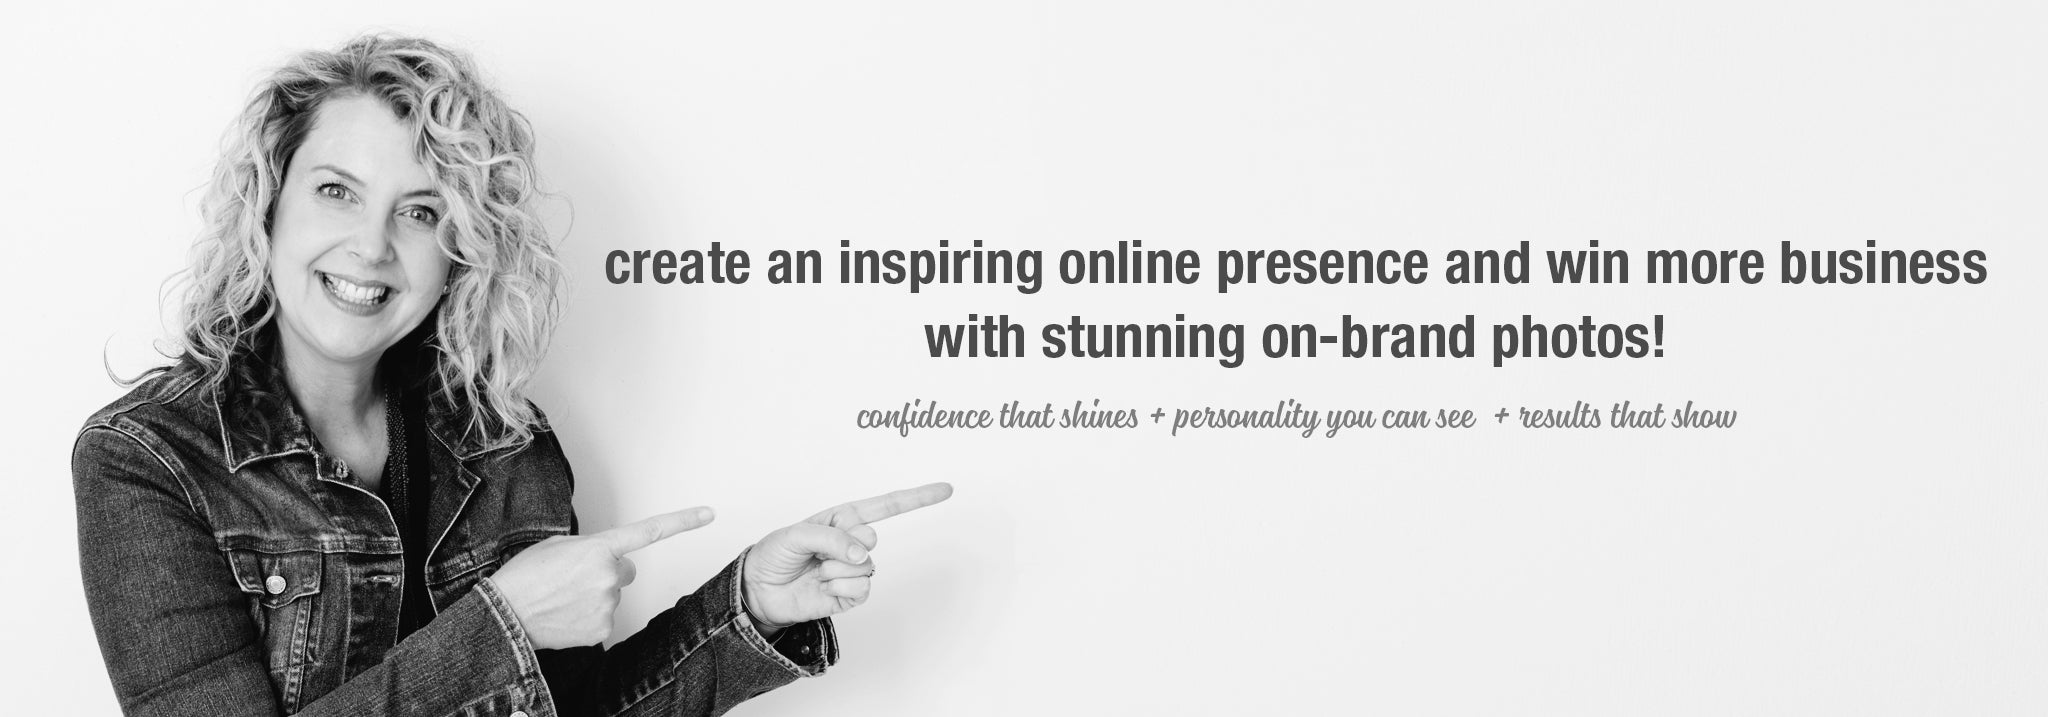 Create an amazing online presence with personal brand photos, content social media shots and website images